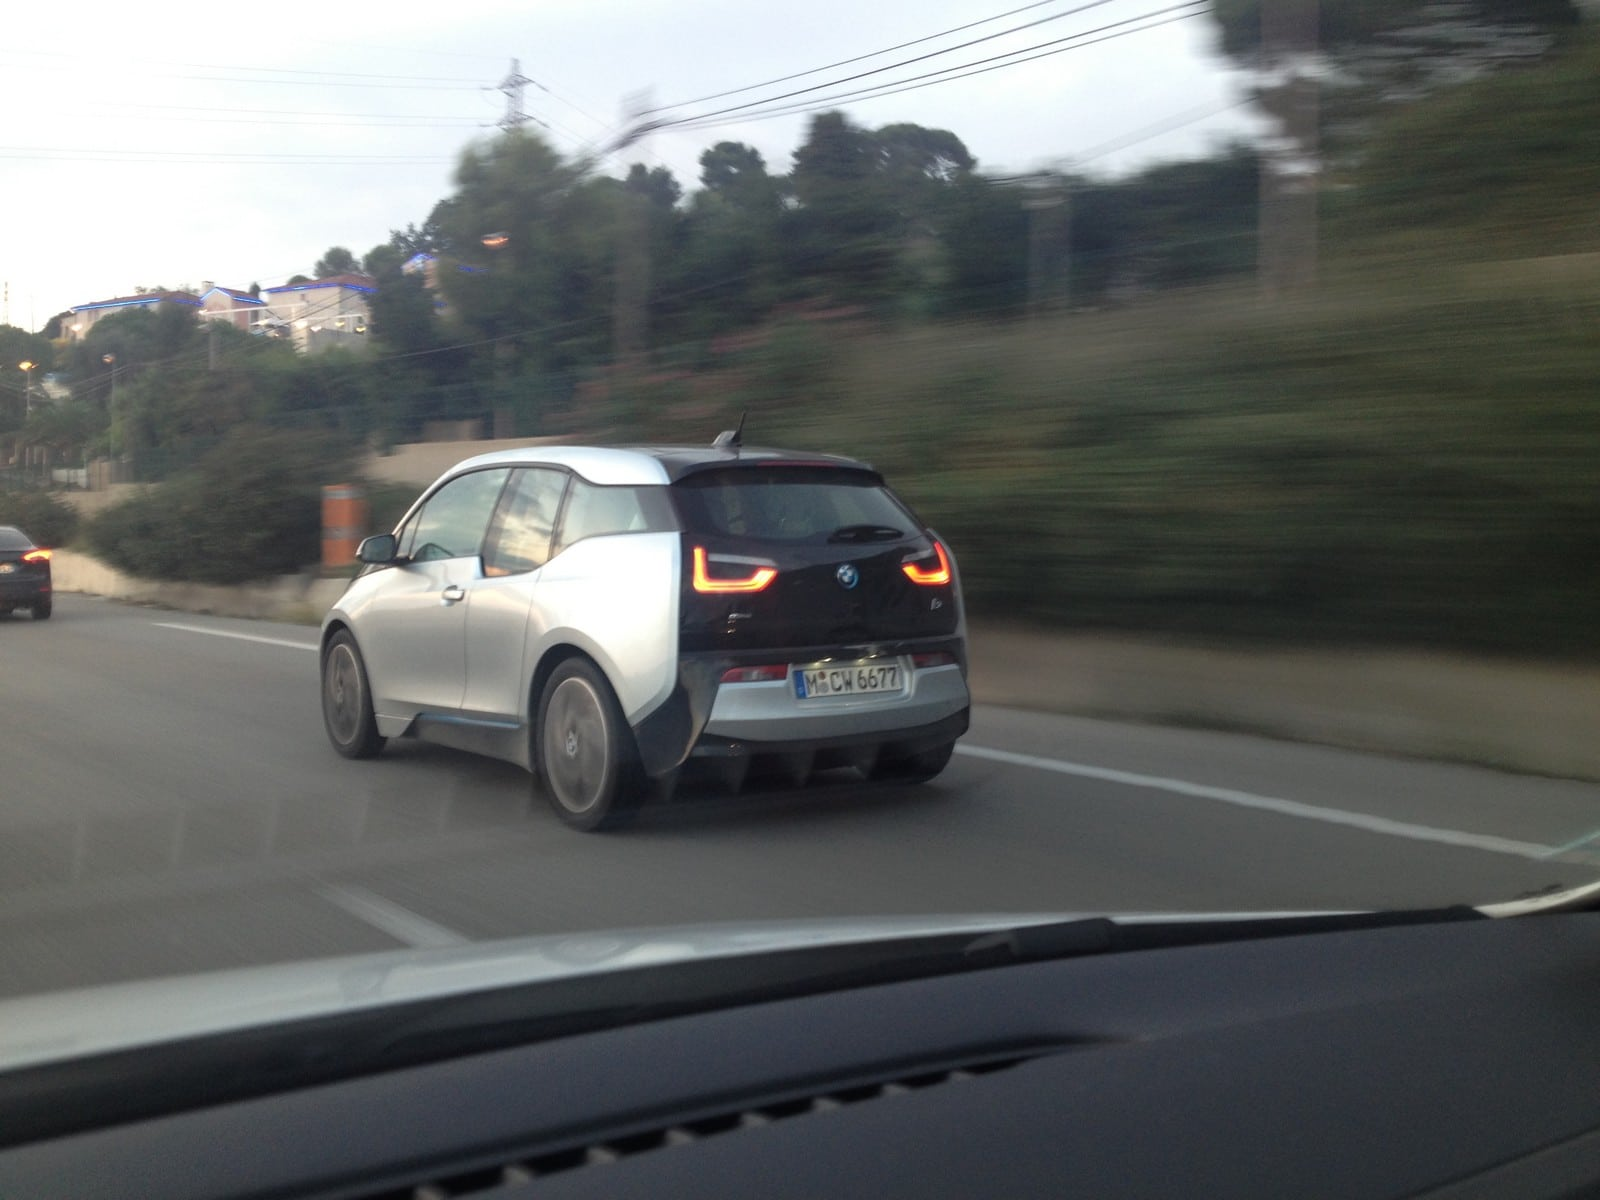 Spyshots : la BMW i3 surprise dans le sud de la France